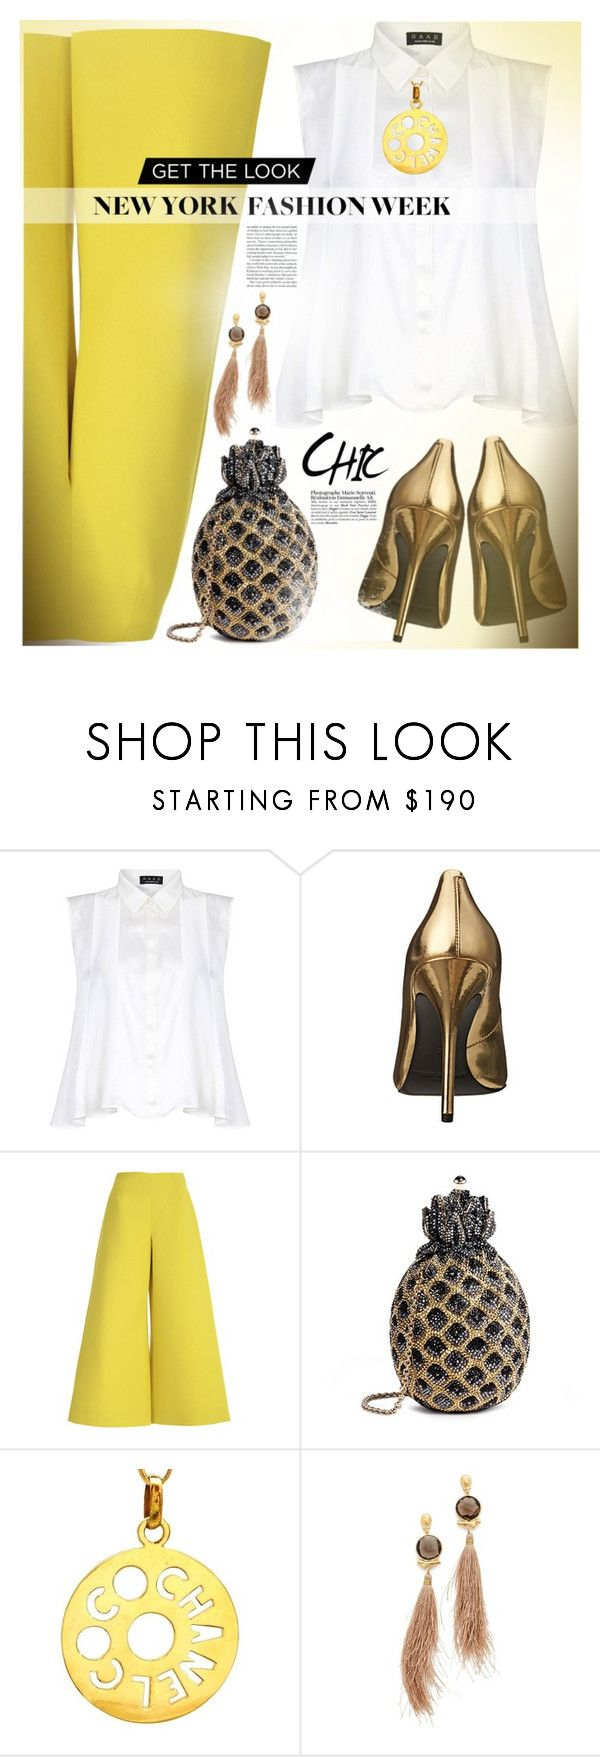 """""""#nyfw"""" by liligwada ❤ liked on Polyvore featuring Pierre Balmain, Delpozo, Judith Leiber, Chanel and Gas Bijoux"""